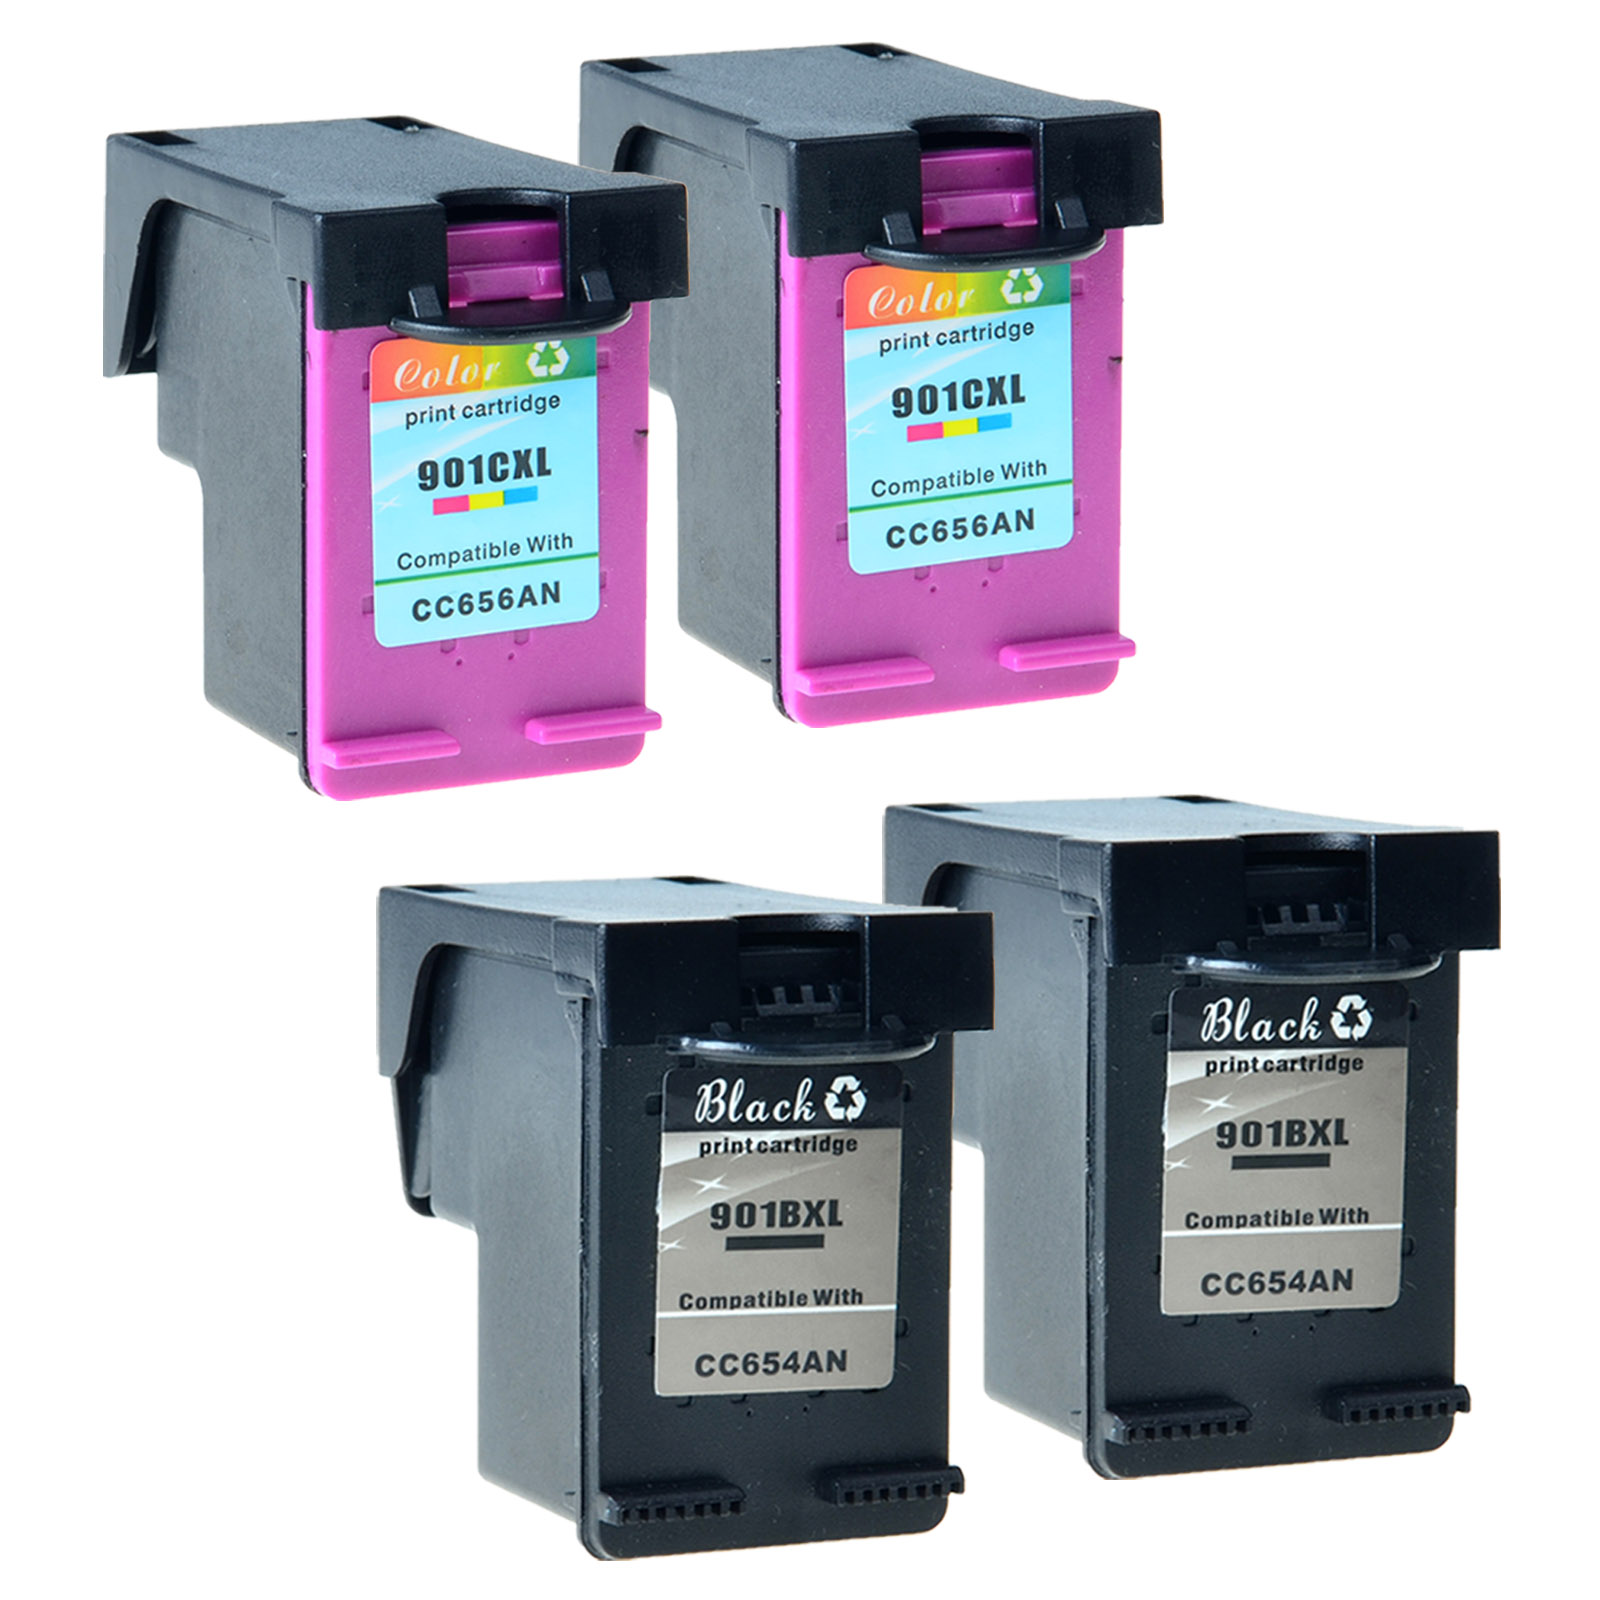 2 Remanufactured Ink Cartridge for HP OfficeJet J4680 J4580 4500 CC654AN #901XL